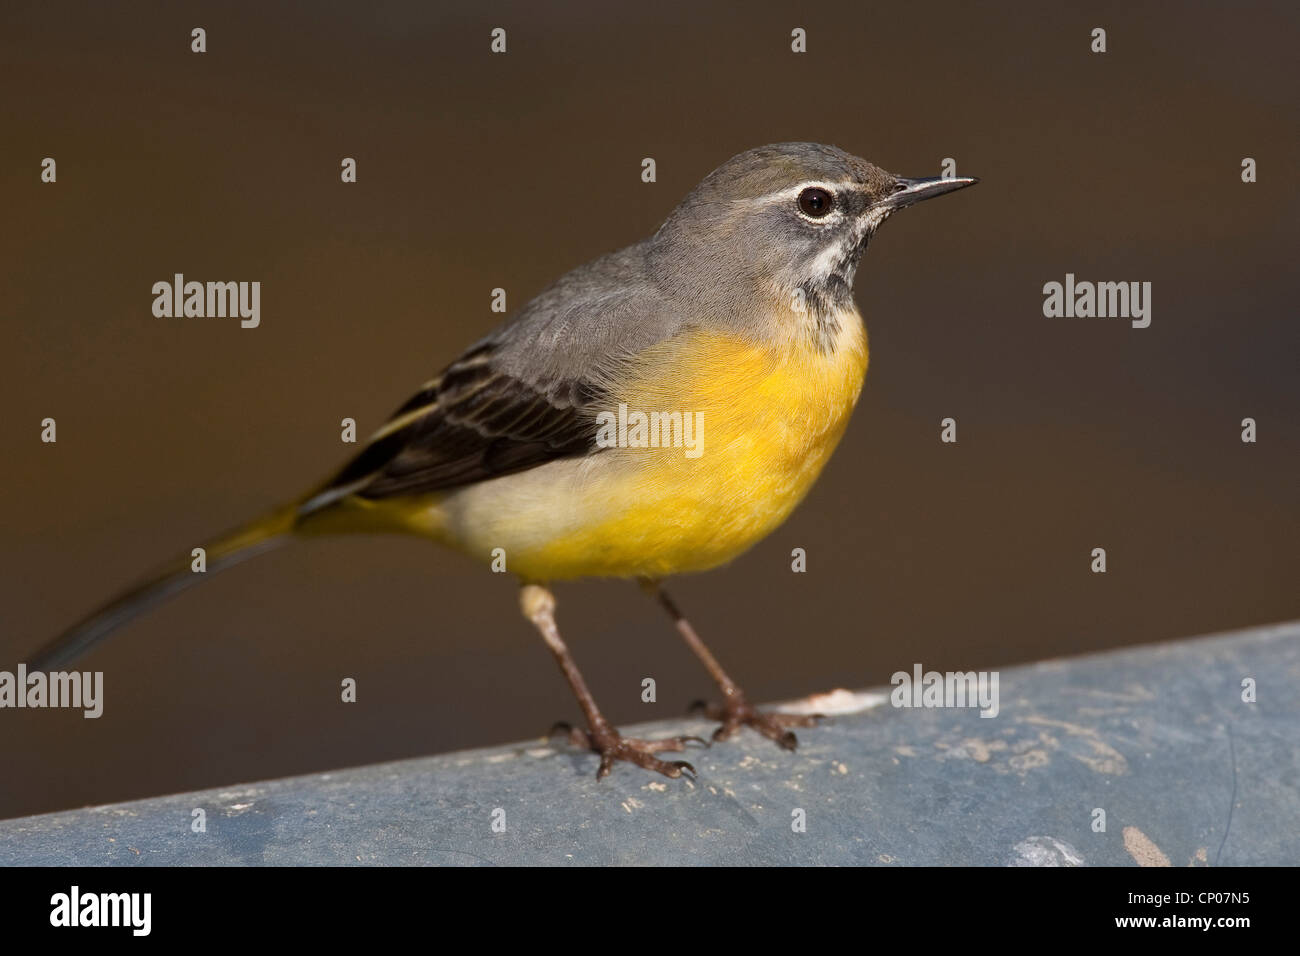 grey wagtail (Motacilla cinerea), sitting on a wall, Germany - Stock Image